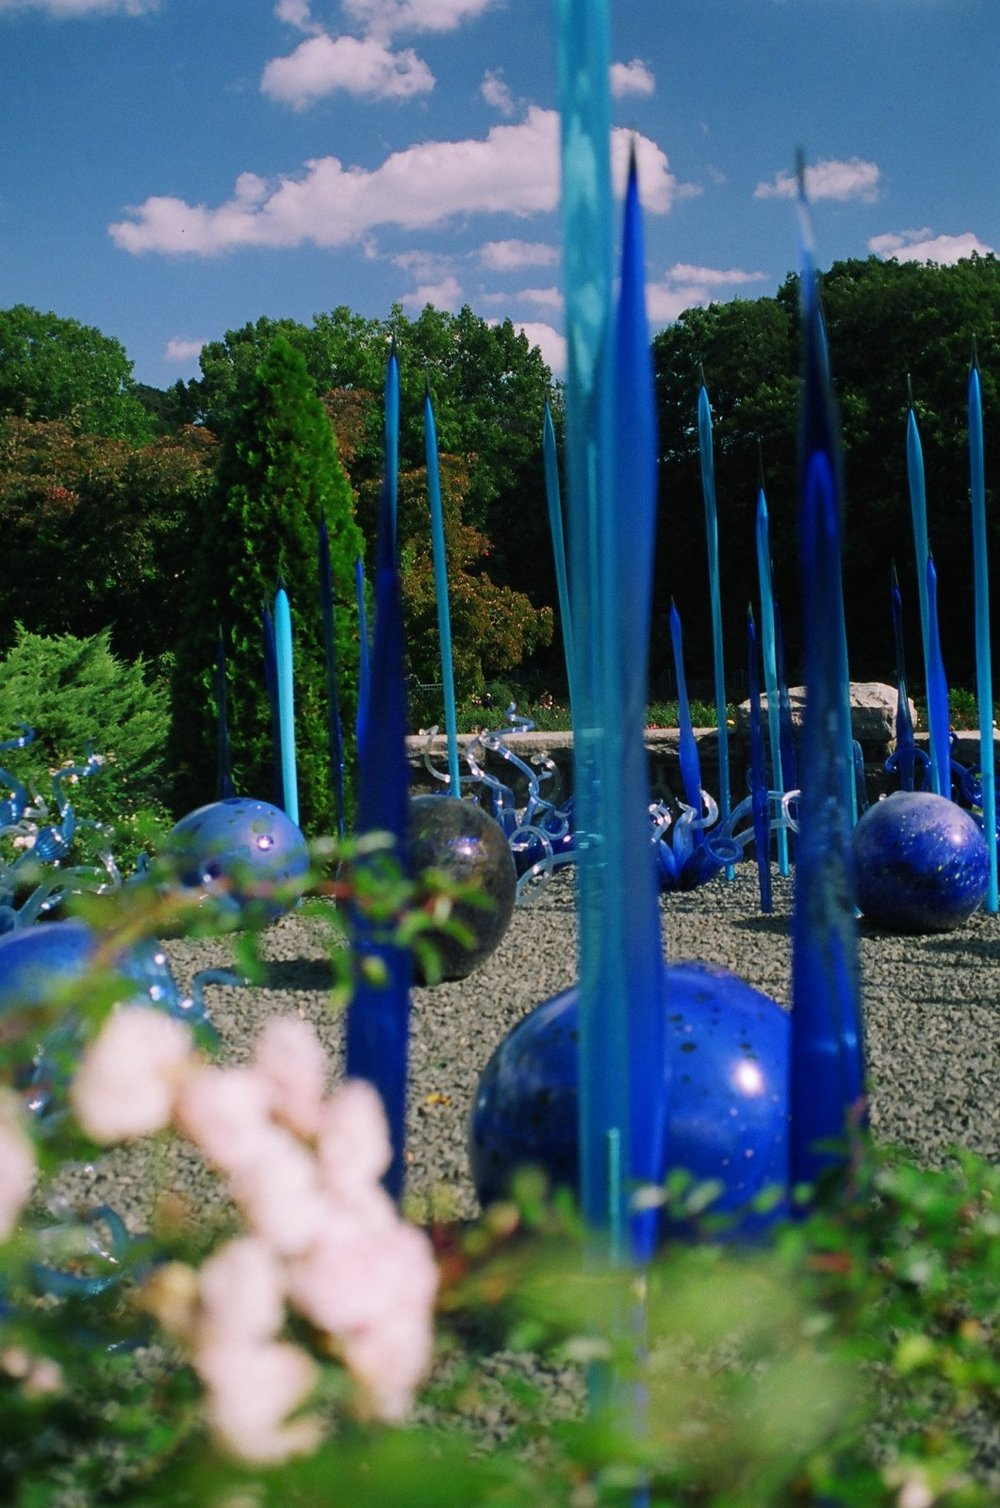 Chihuly Exhibition, Bronx Botantical Gardens